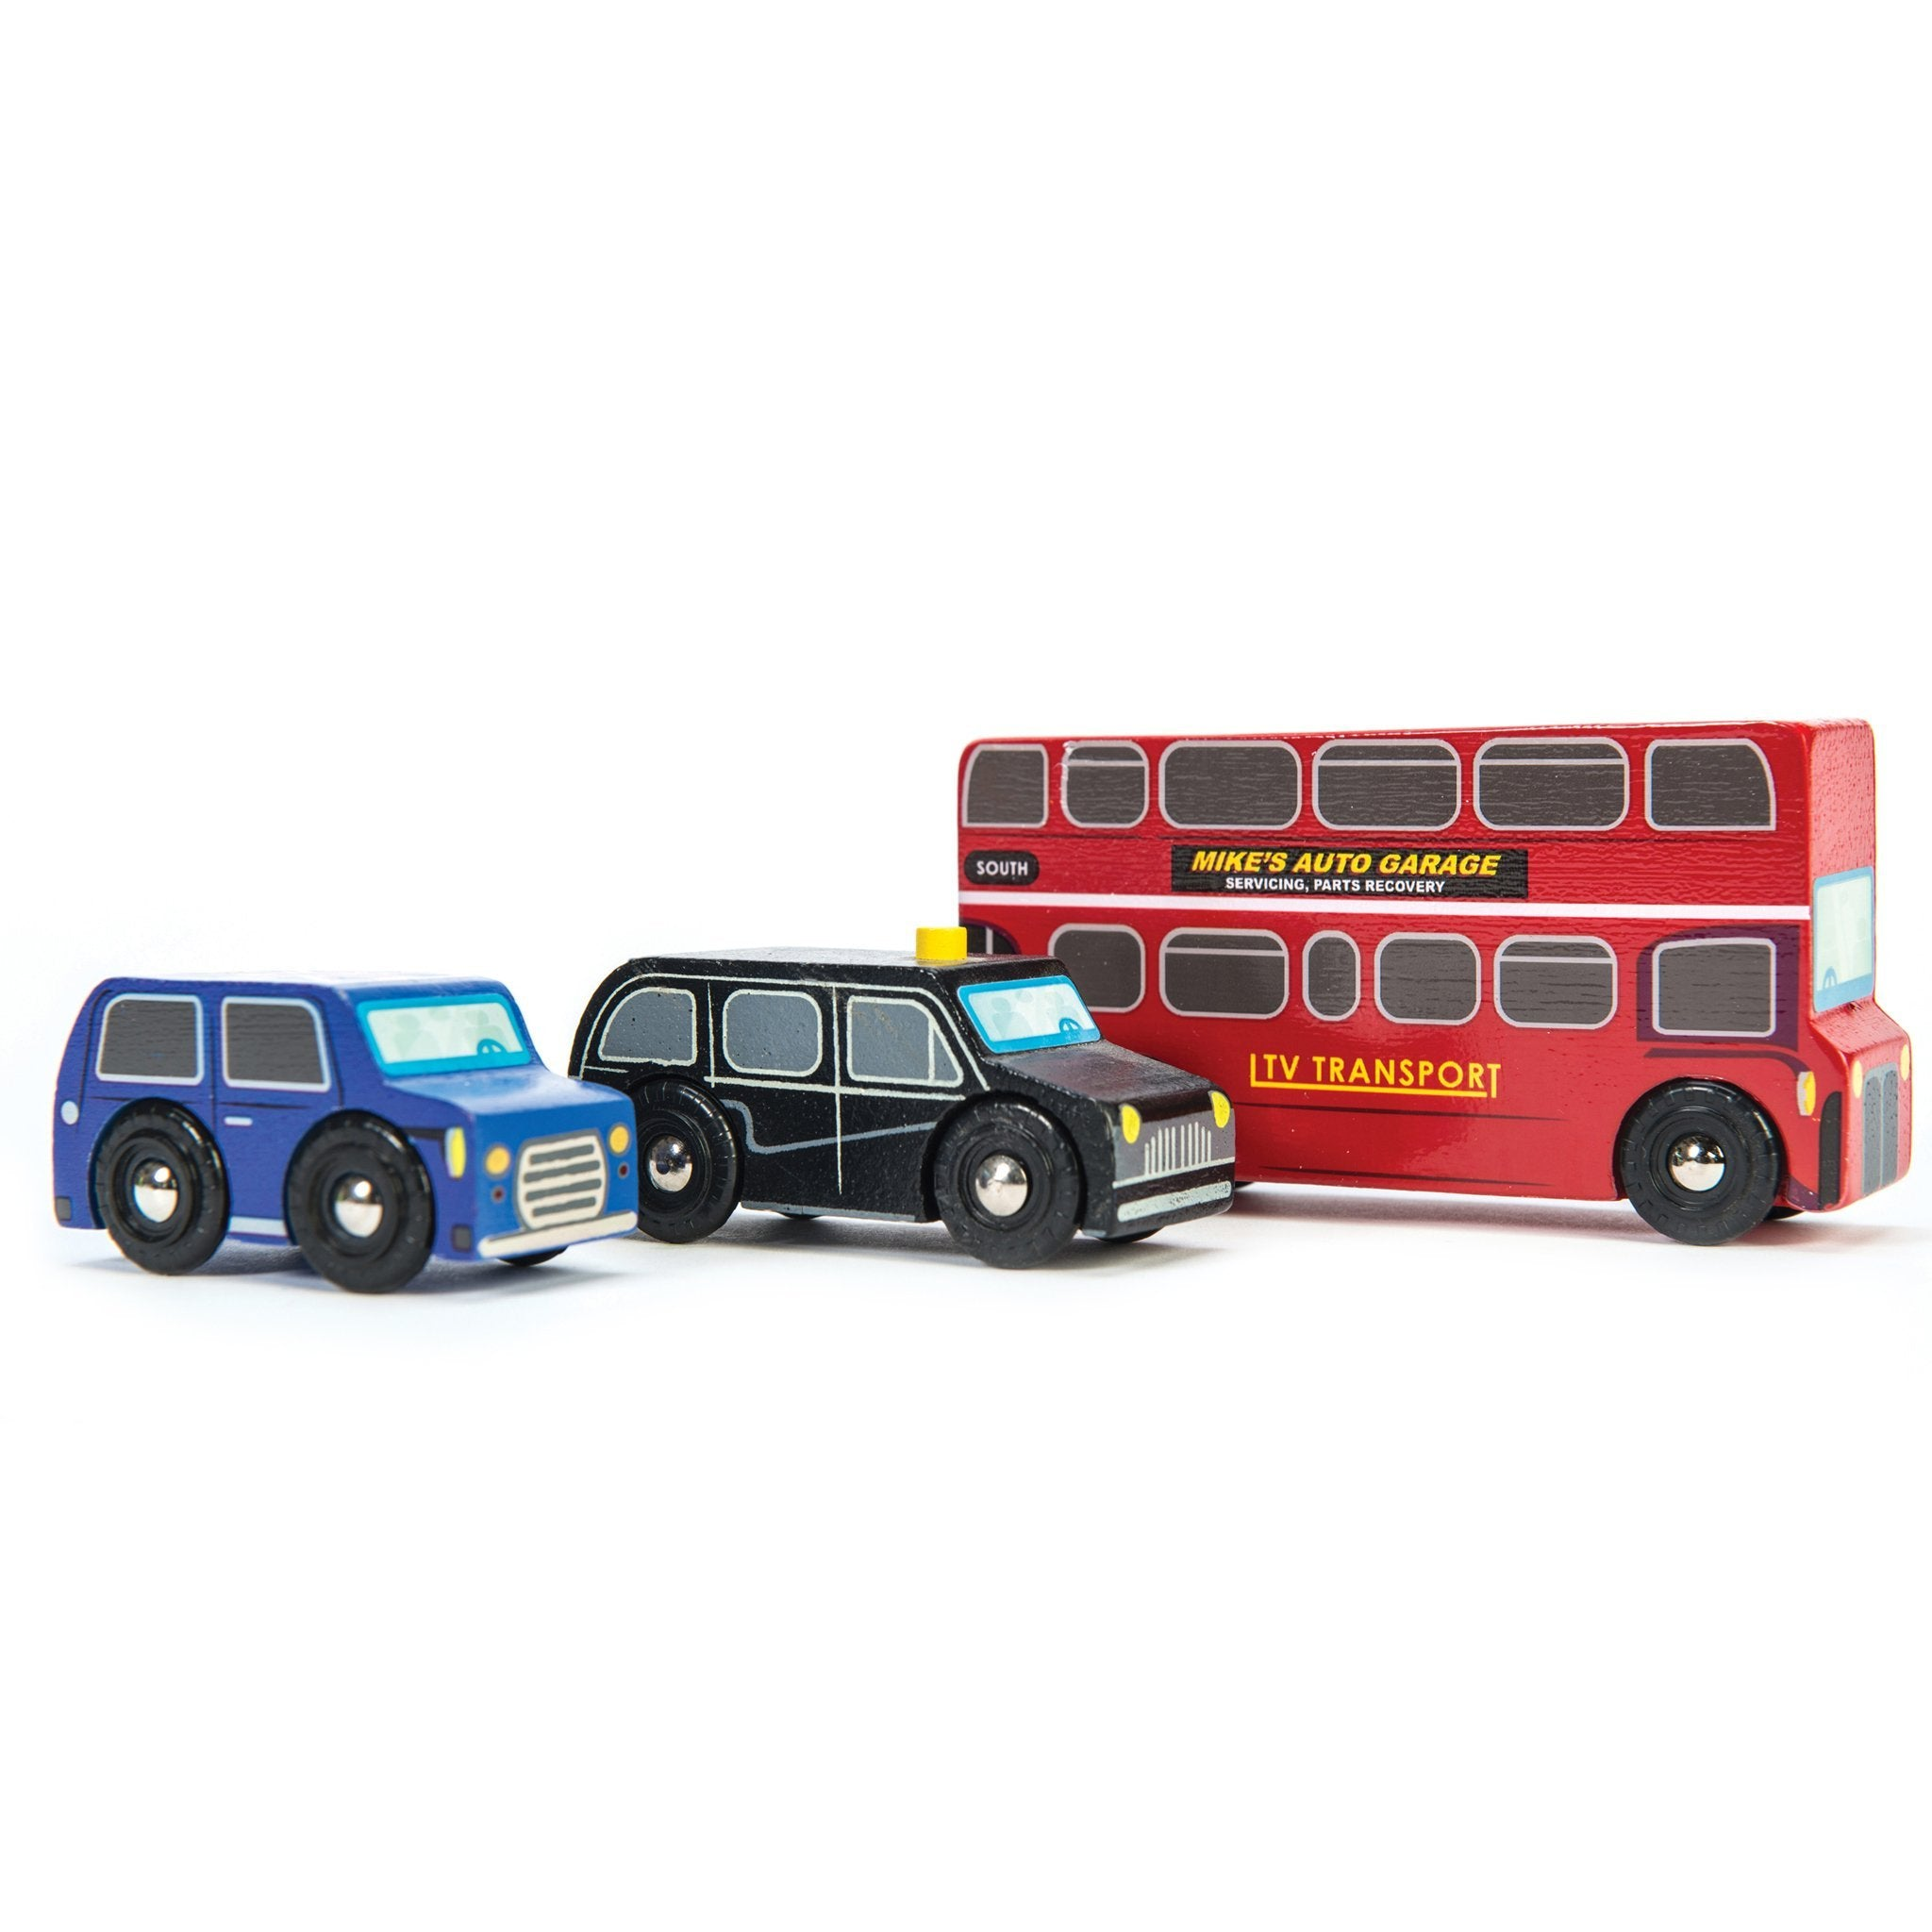 Le Toy Van Little London Car Set Le Toy Van Toy Cars at Little Earth Nest Eco Shop